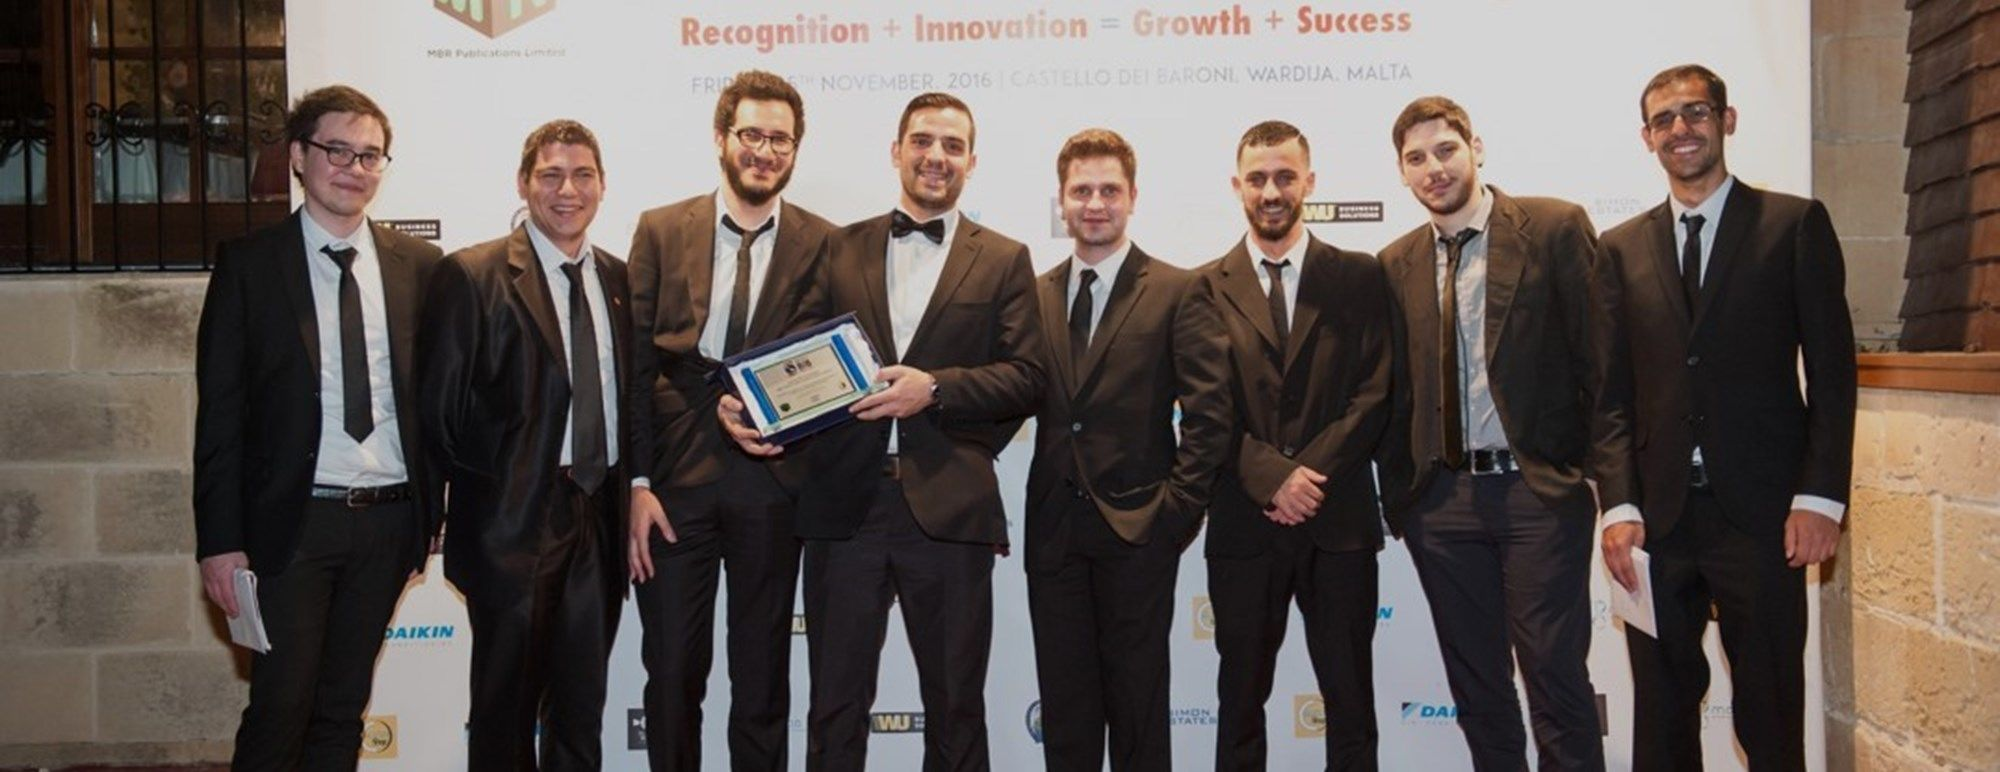 CasaSoft Wins Best in Business Award 2016 for the Second Year in a Row | CasaSoft Ltd. Malta